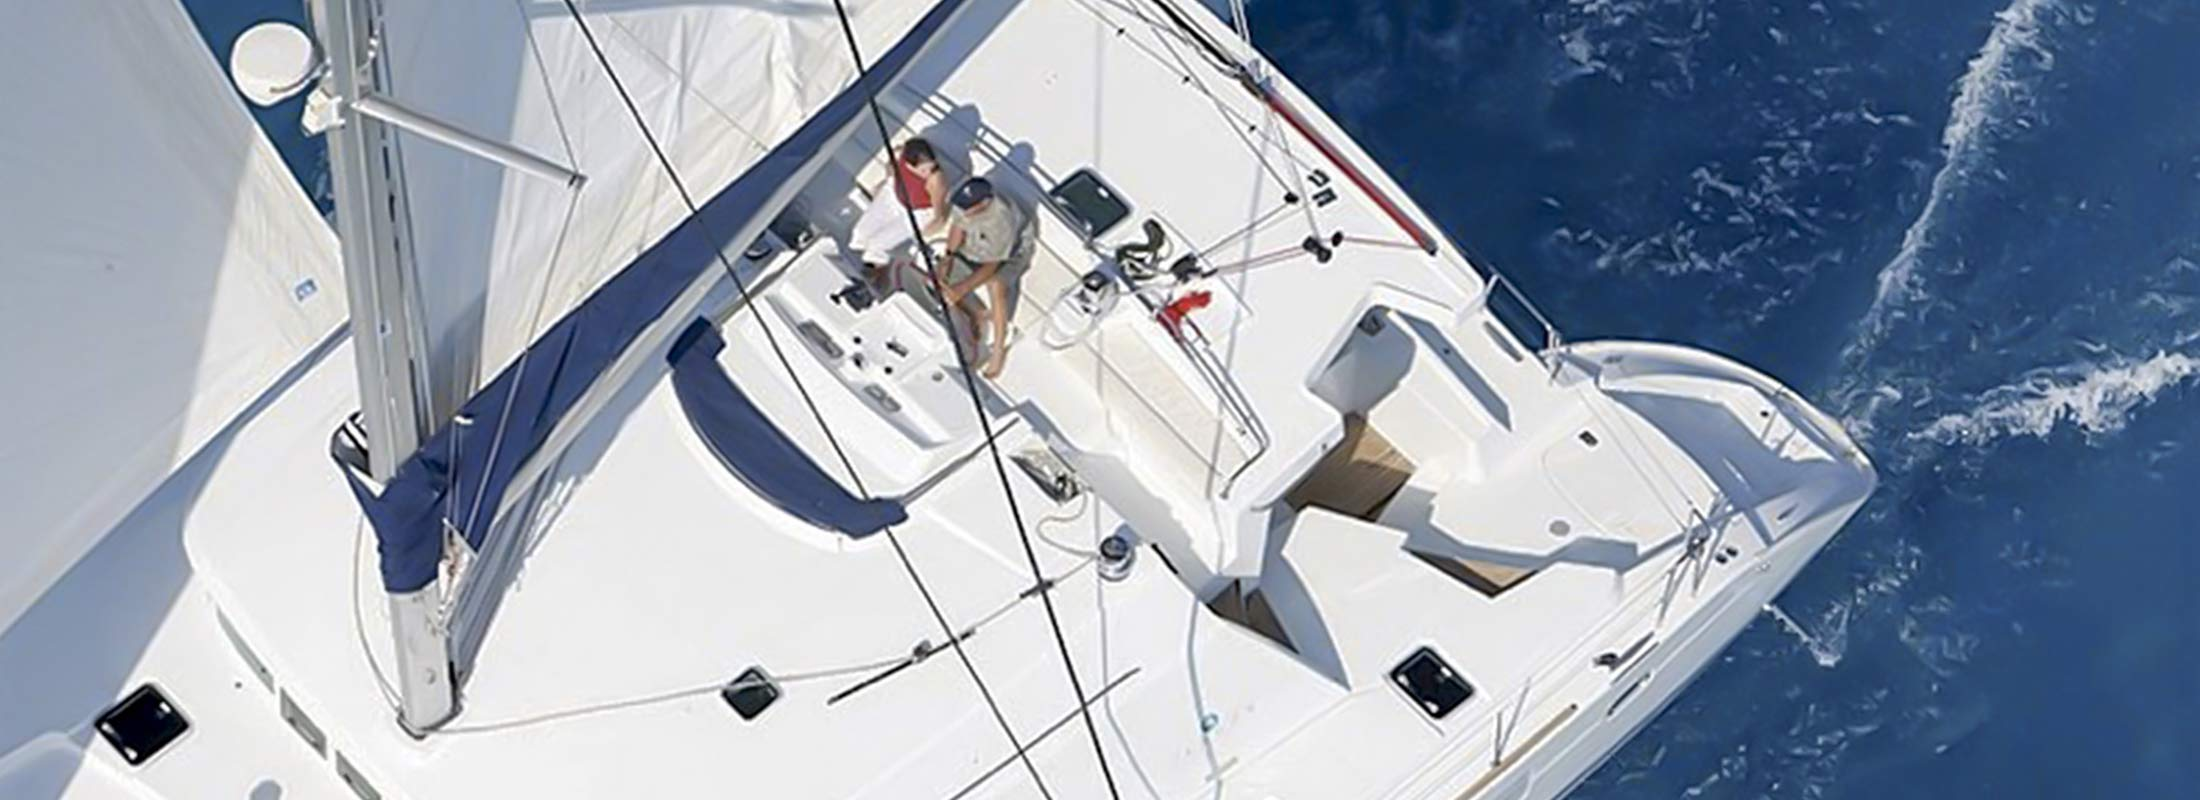 Whispers Sailing Yacht for Charter Carribean Sea The Bahamas slider 3